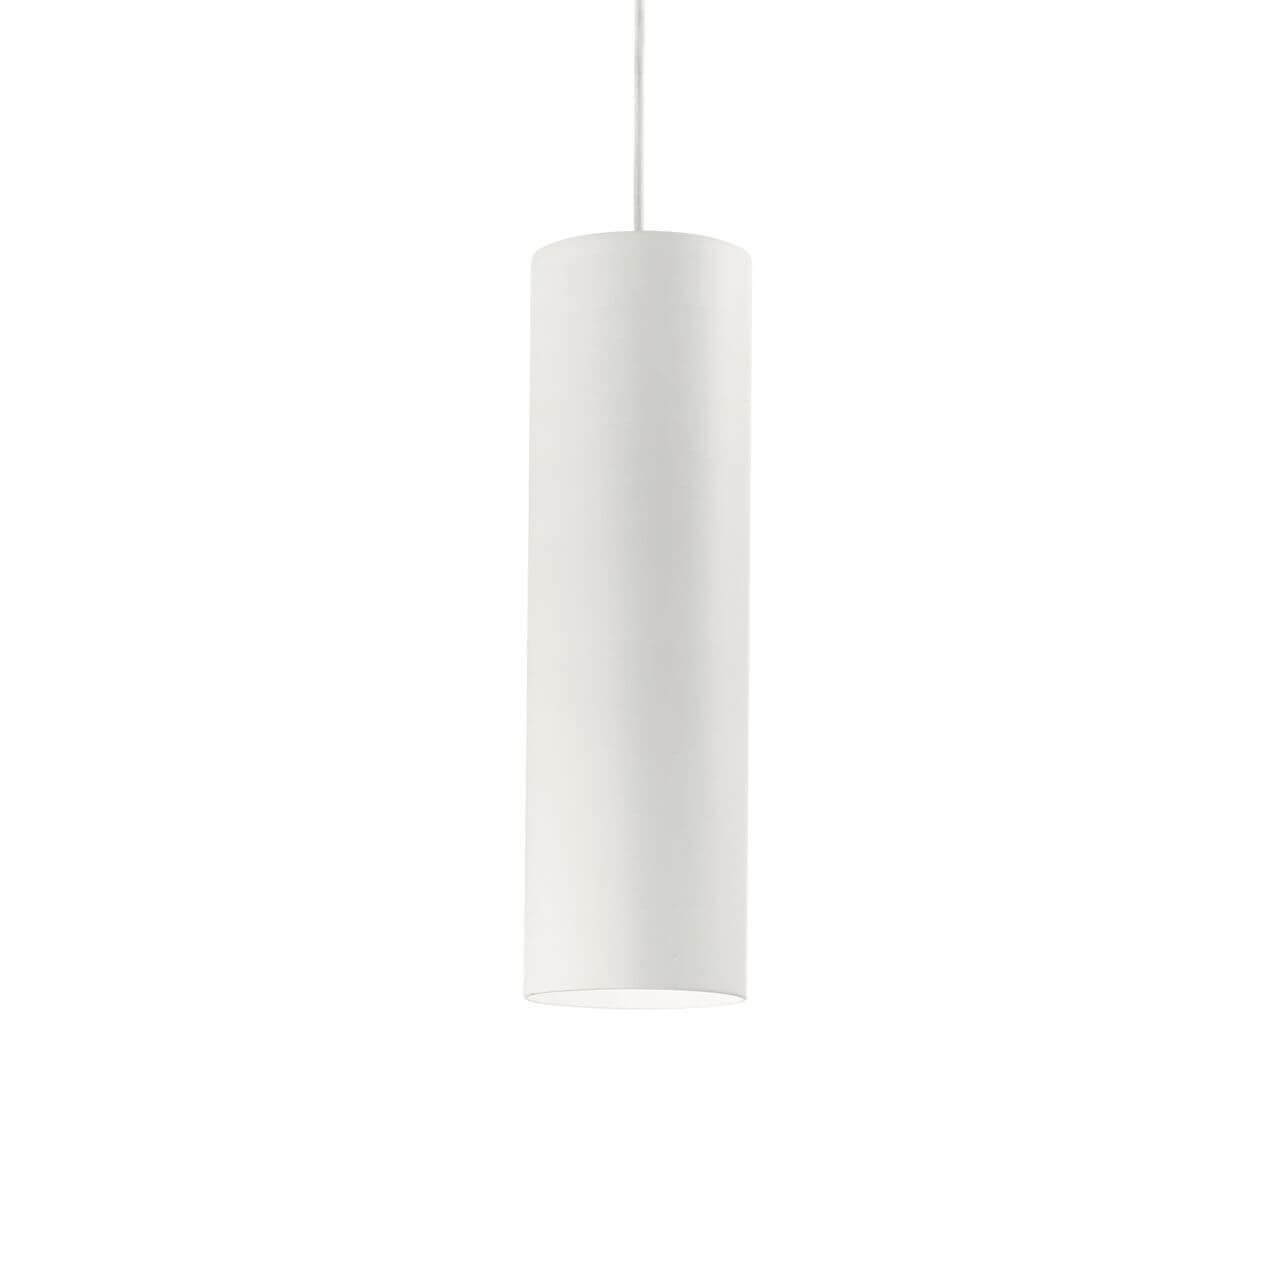 Светильник Ideal Lux Look Sp1 D12 Bianco